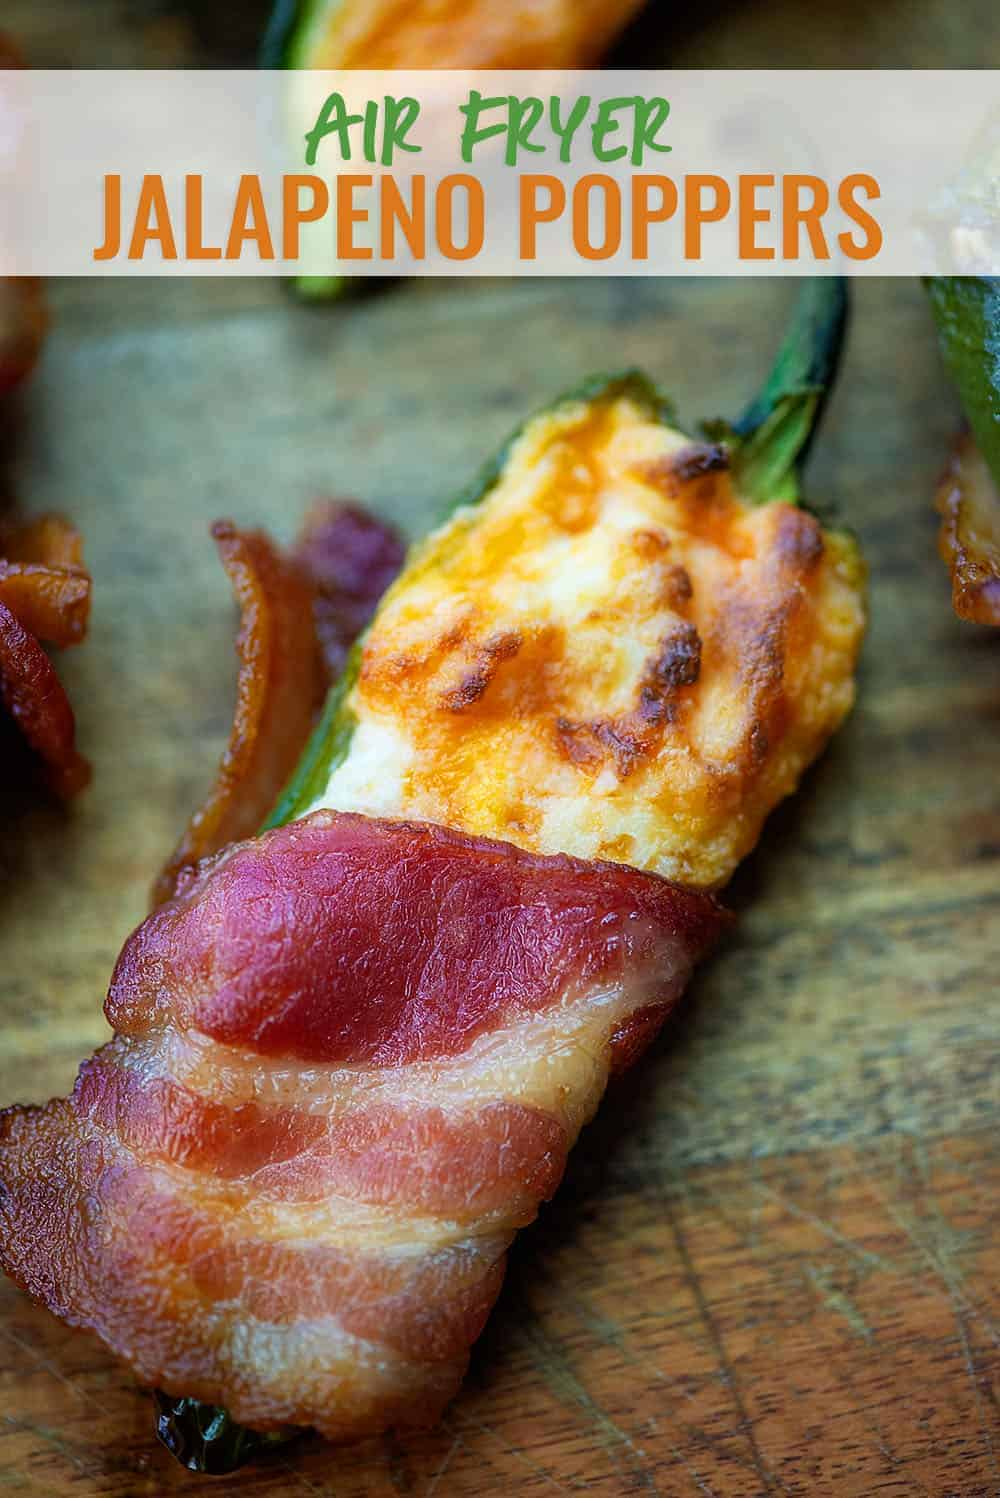 Air Fryer Jalapeno Poppers wrapped in bacon on a cutting board